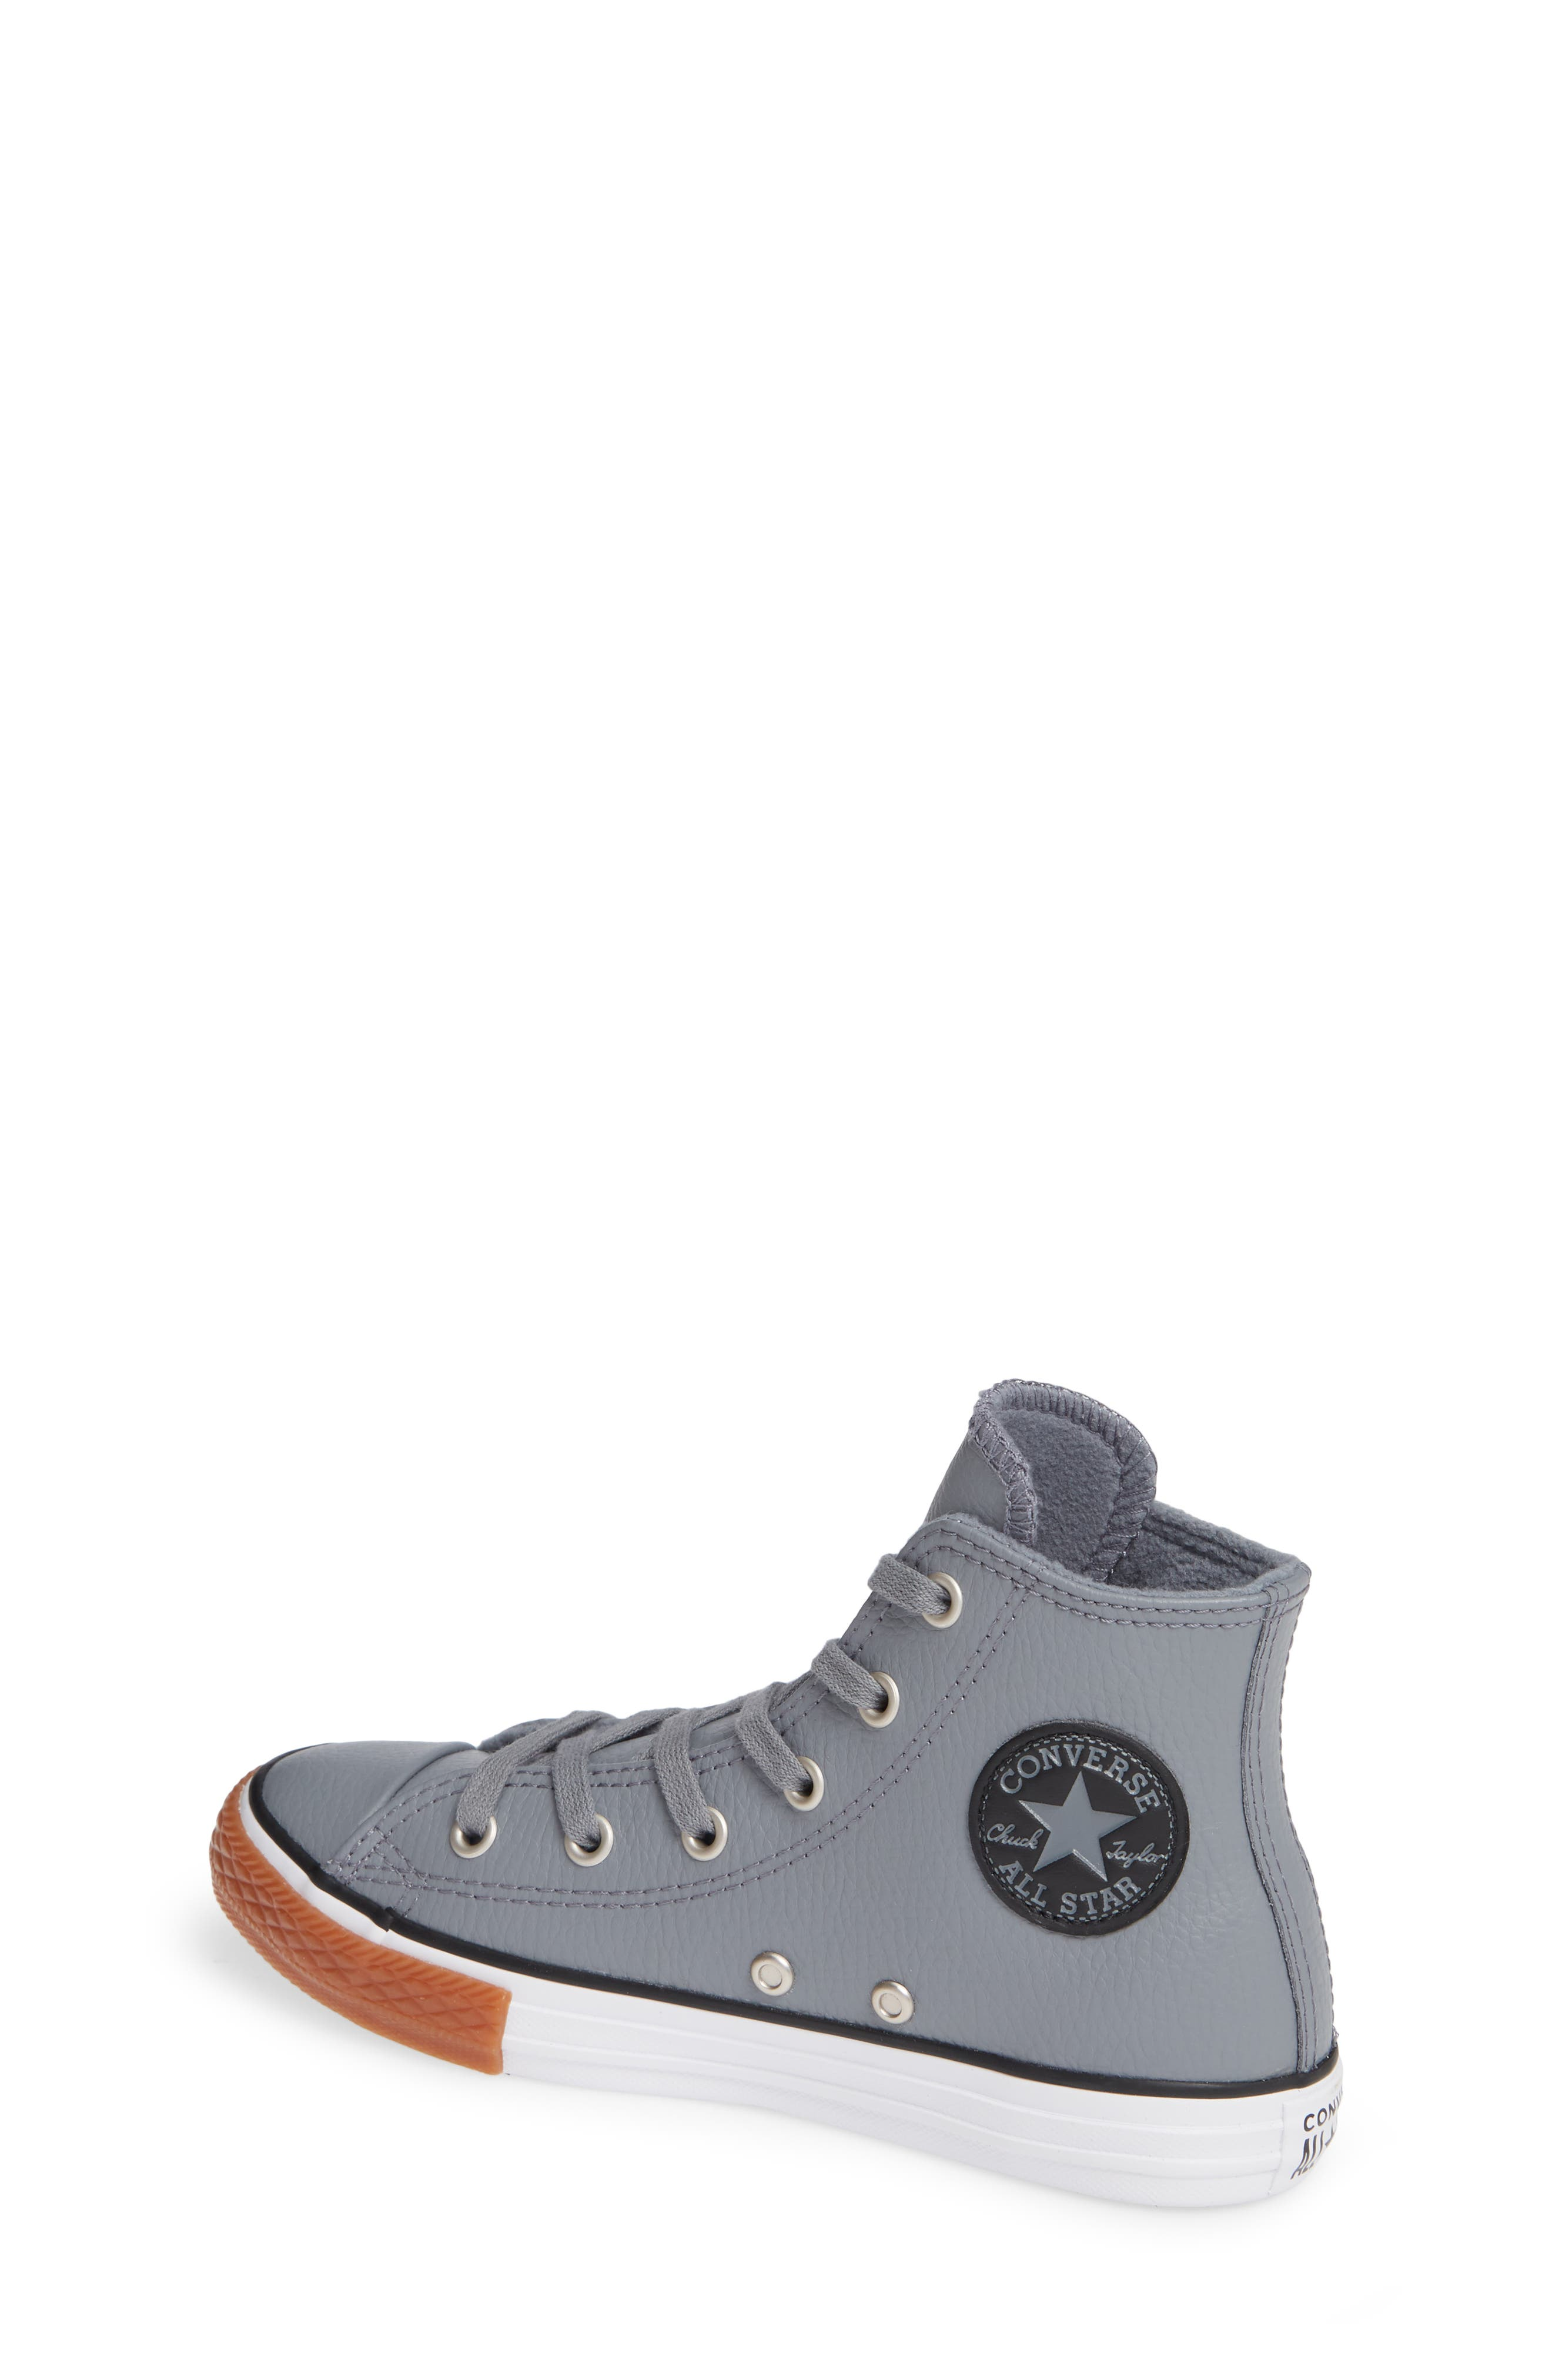 Chuck Taylor<sup>®</sup> All Star<sup>®</sup> No Gum In Class Leather High Top Sneaker,                             Alternate thumbnail 2, color,                             COOL GREY